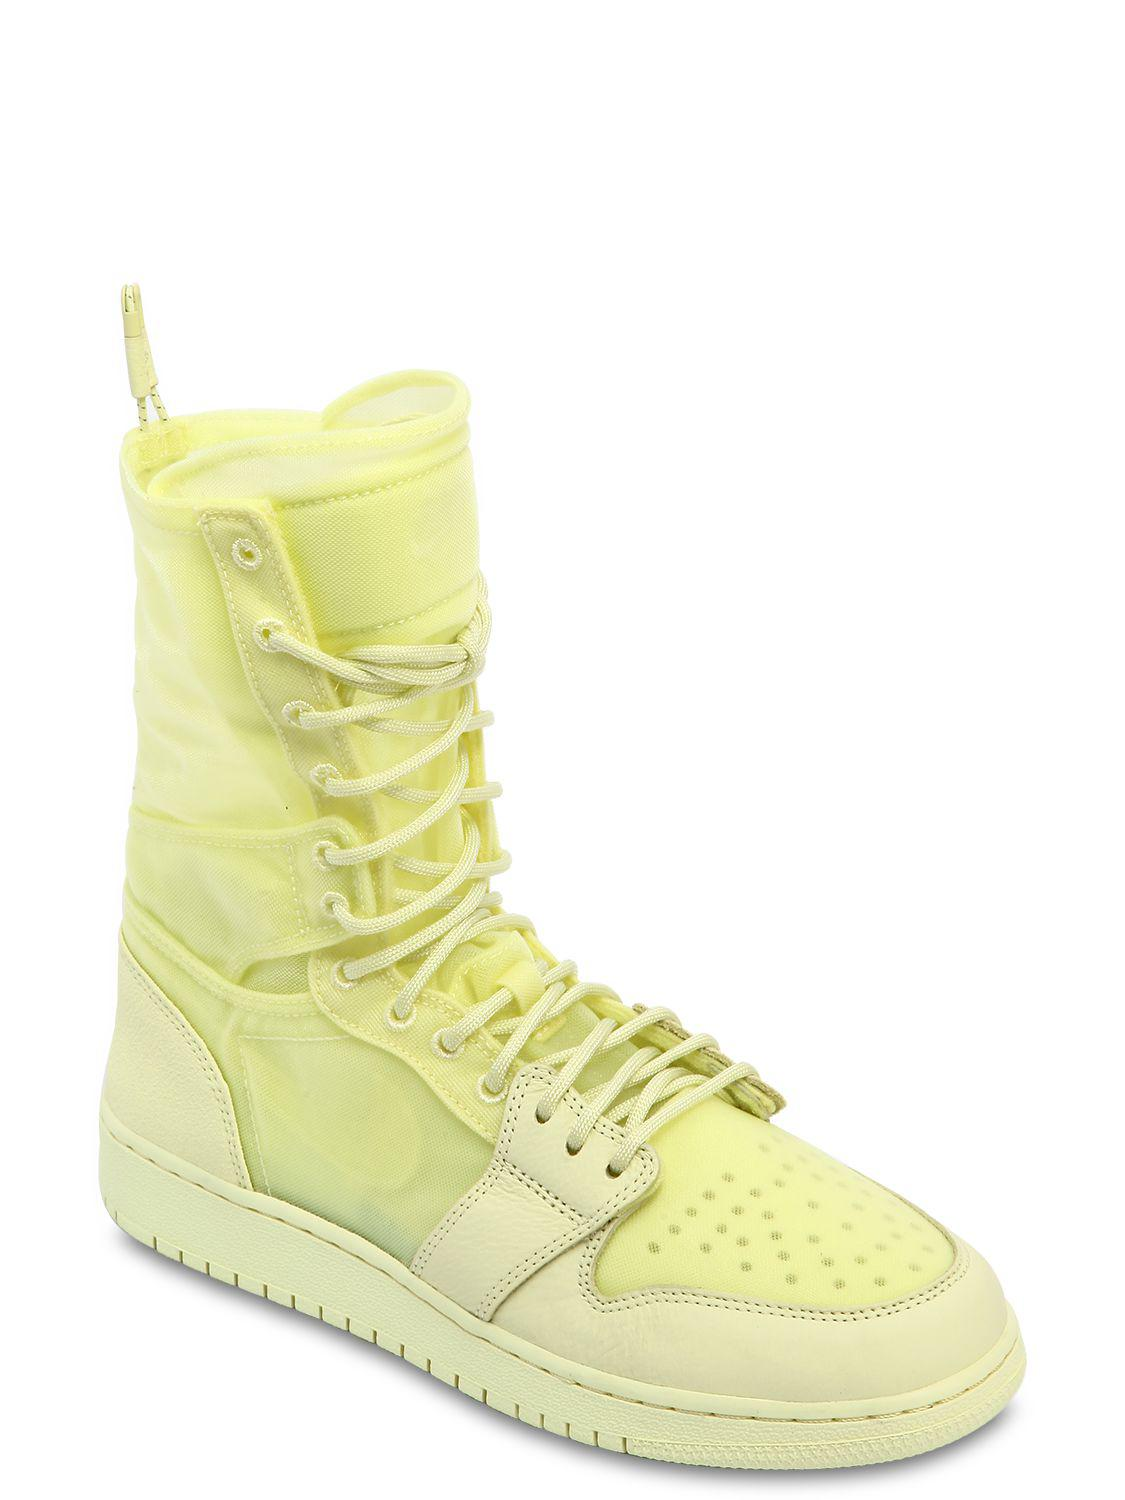 finest selection f1702 d223c Lyst - Nike Air Jordan 1 Explorer Xx Sneaker Boots in Yellow